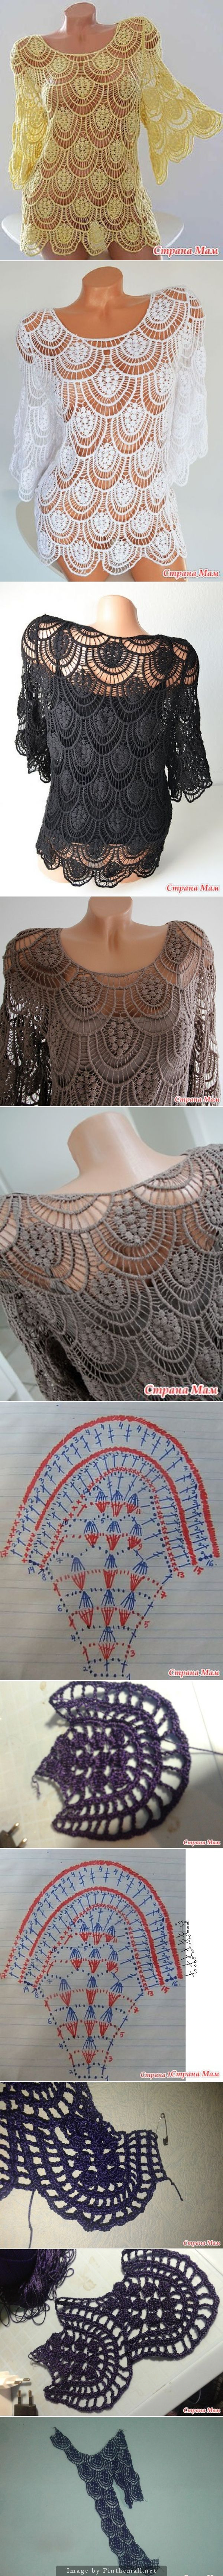 Love this tunic! Would make a beautiful beach cover-up. Has graphs